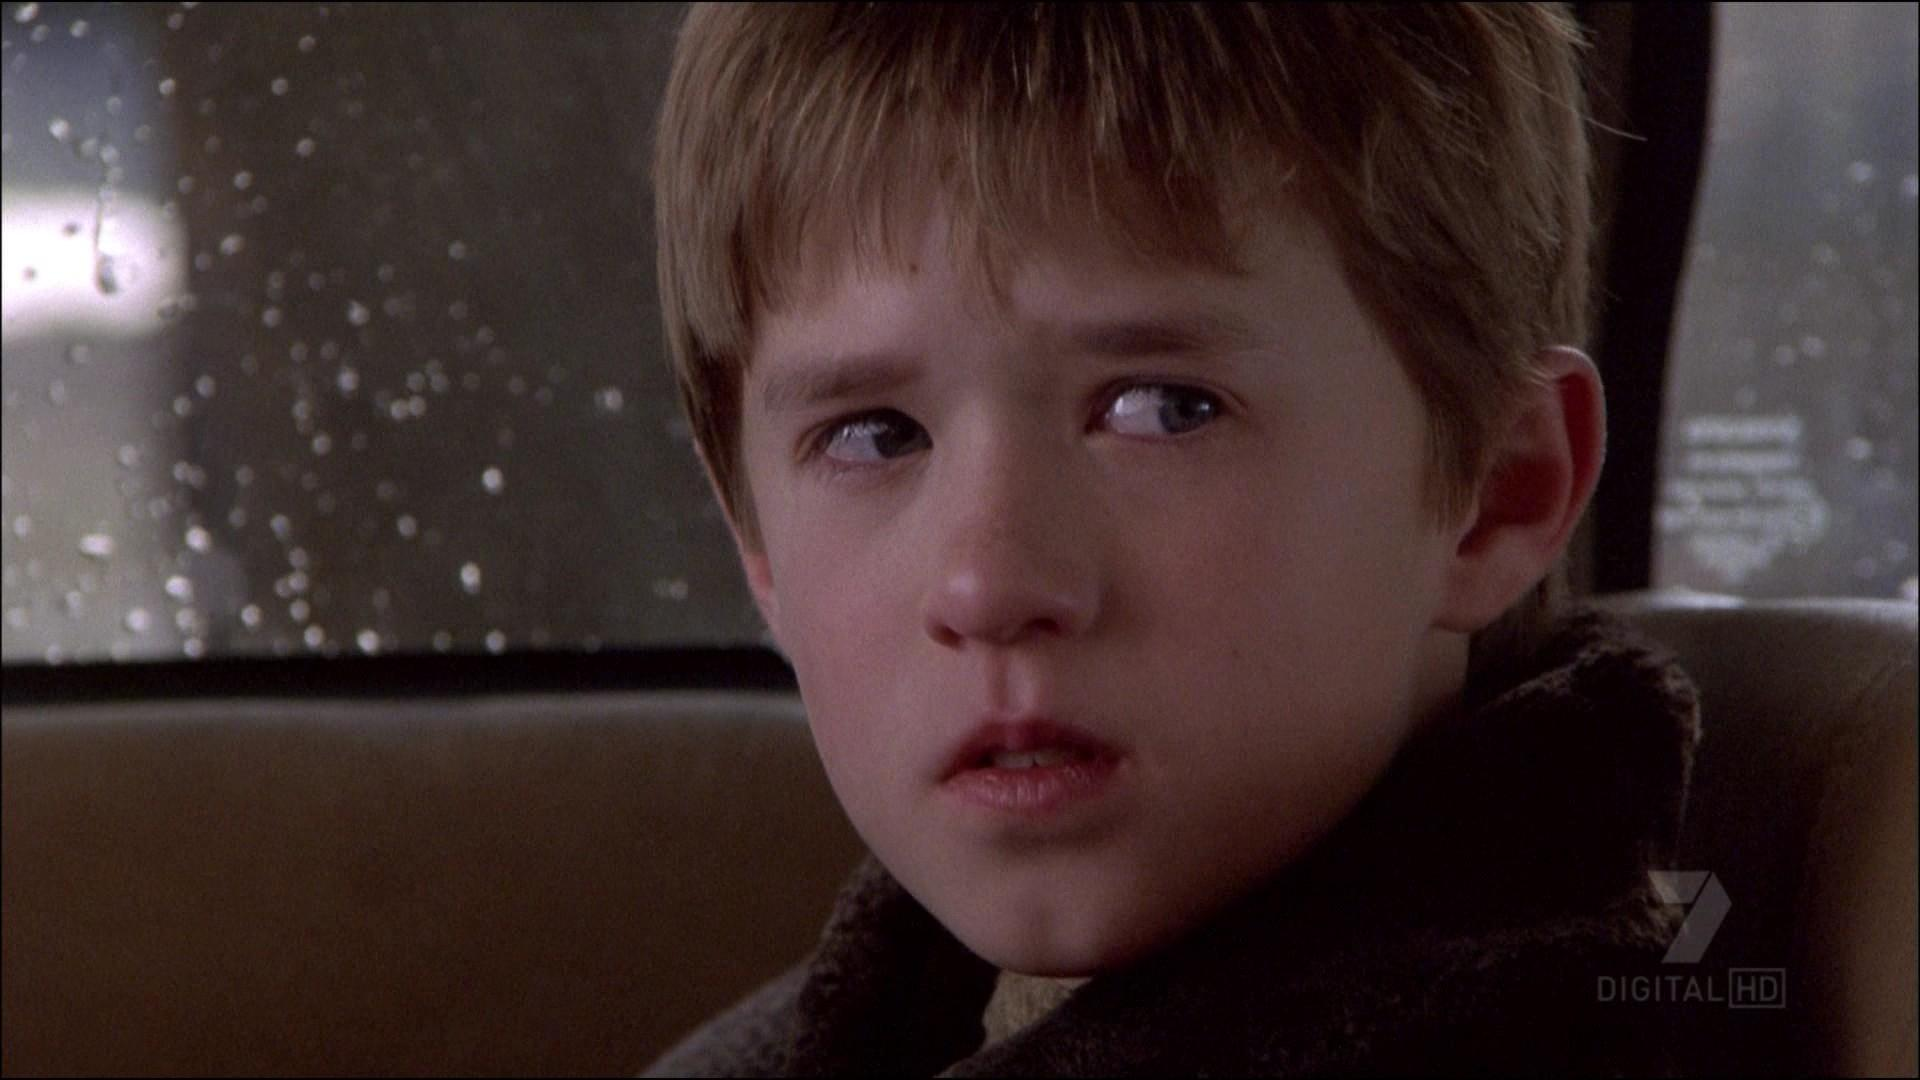 The Sixth Sense' Surprise Ending Is Obvious If You Pay Attention To